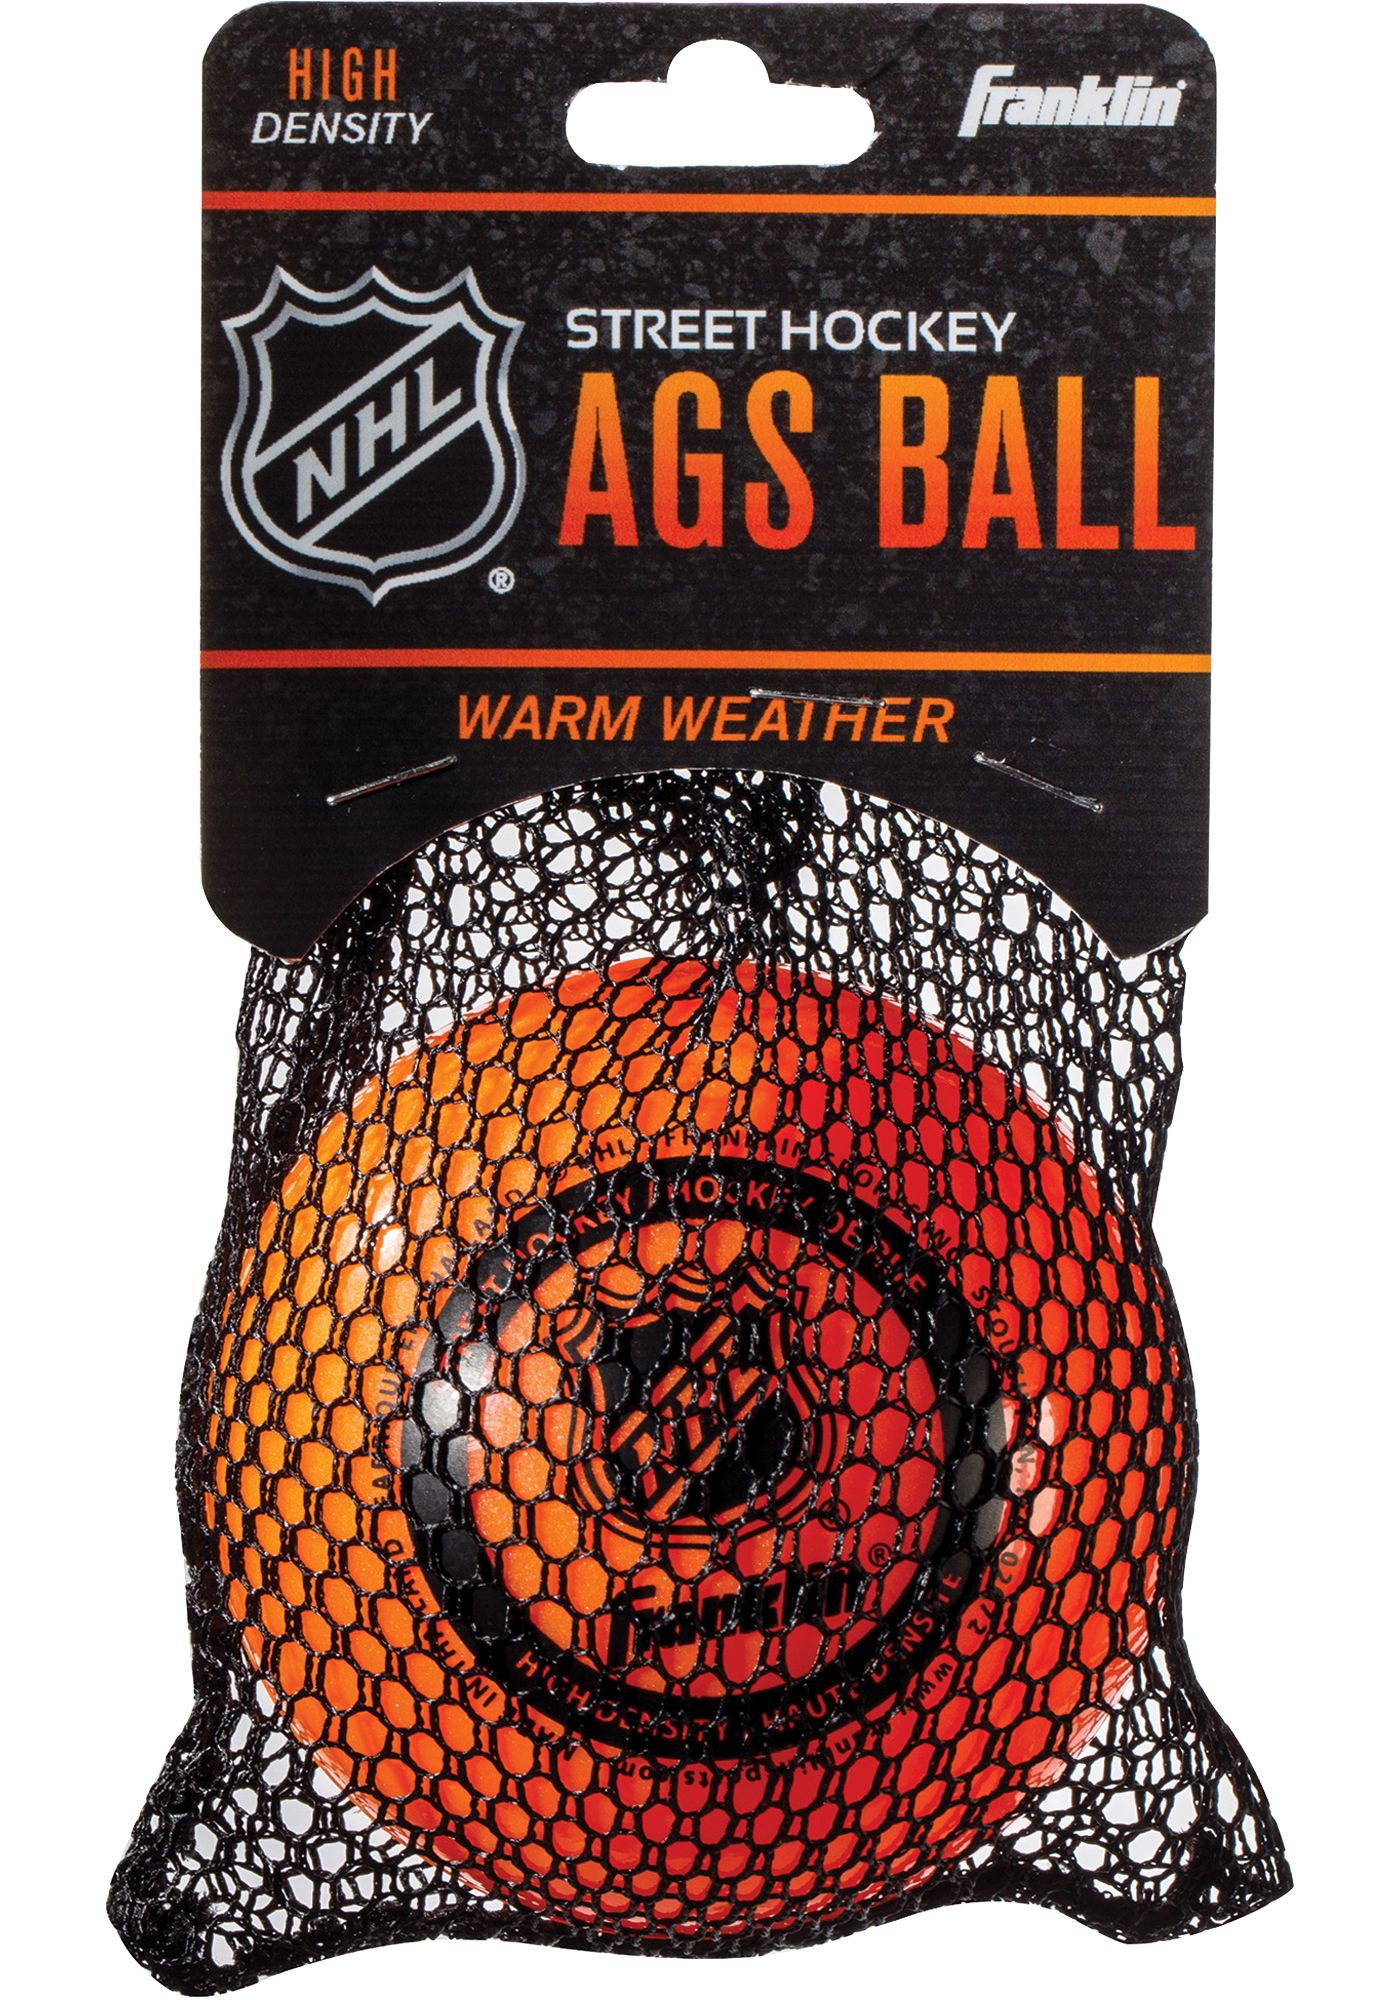 Franklin NHL High Density AGS Street Hockey Ball